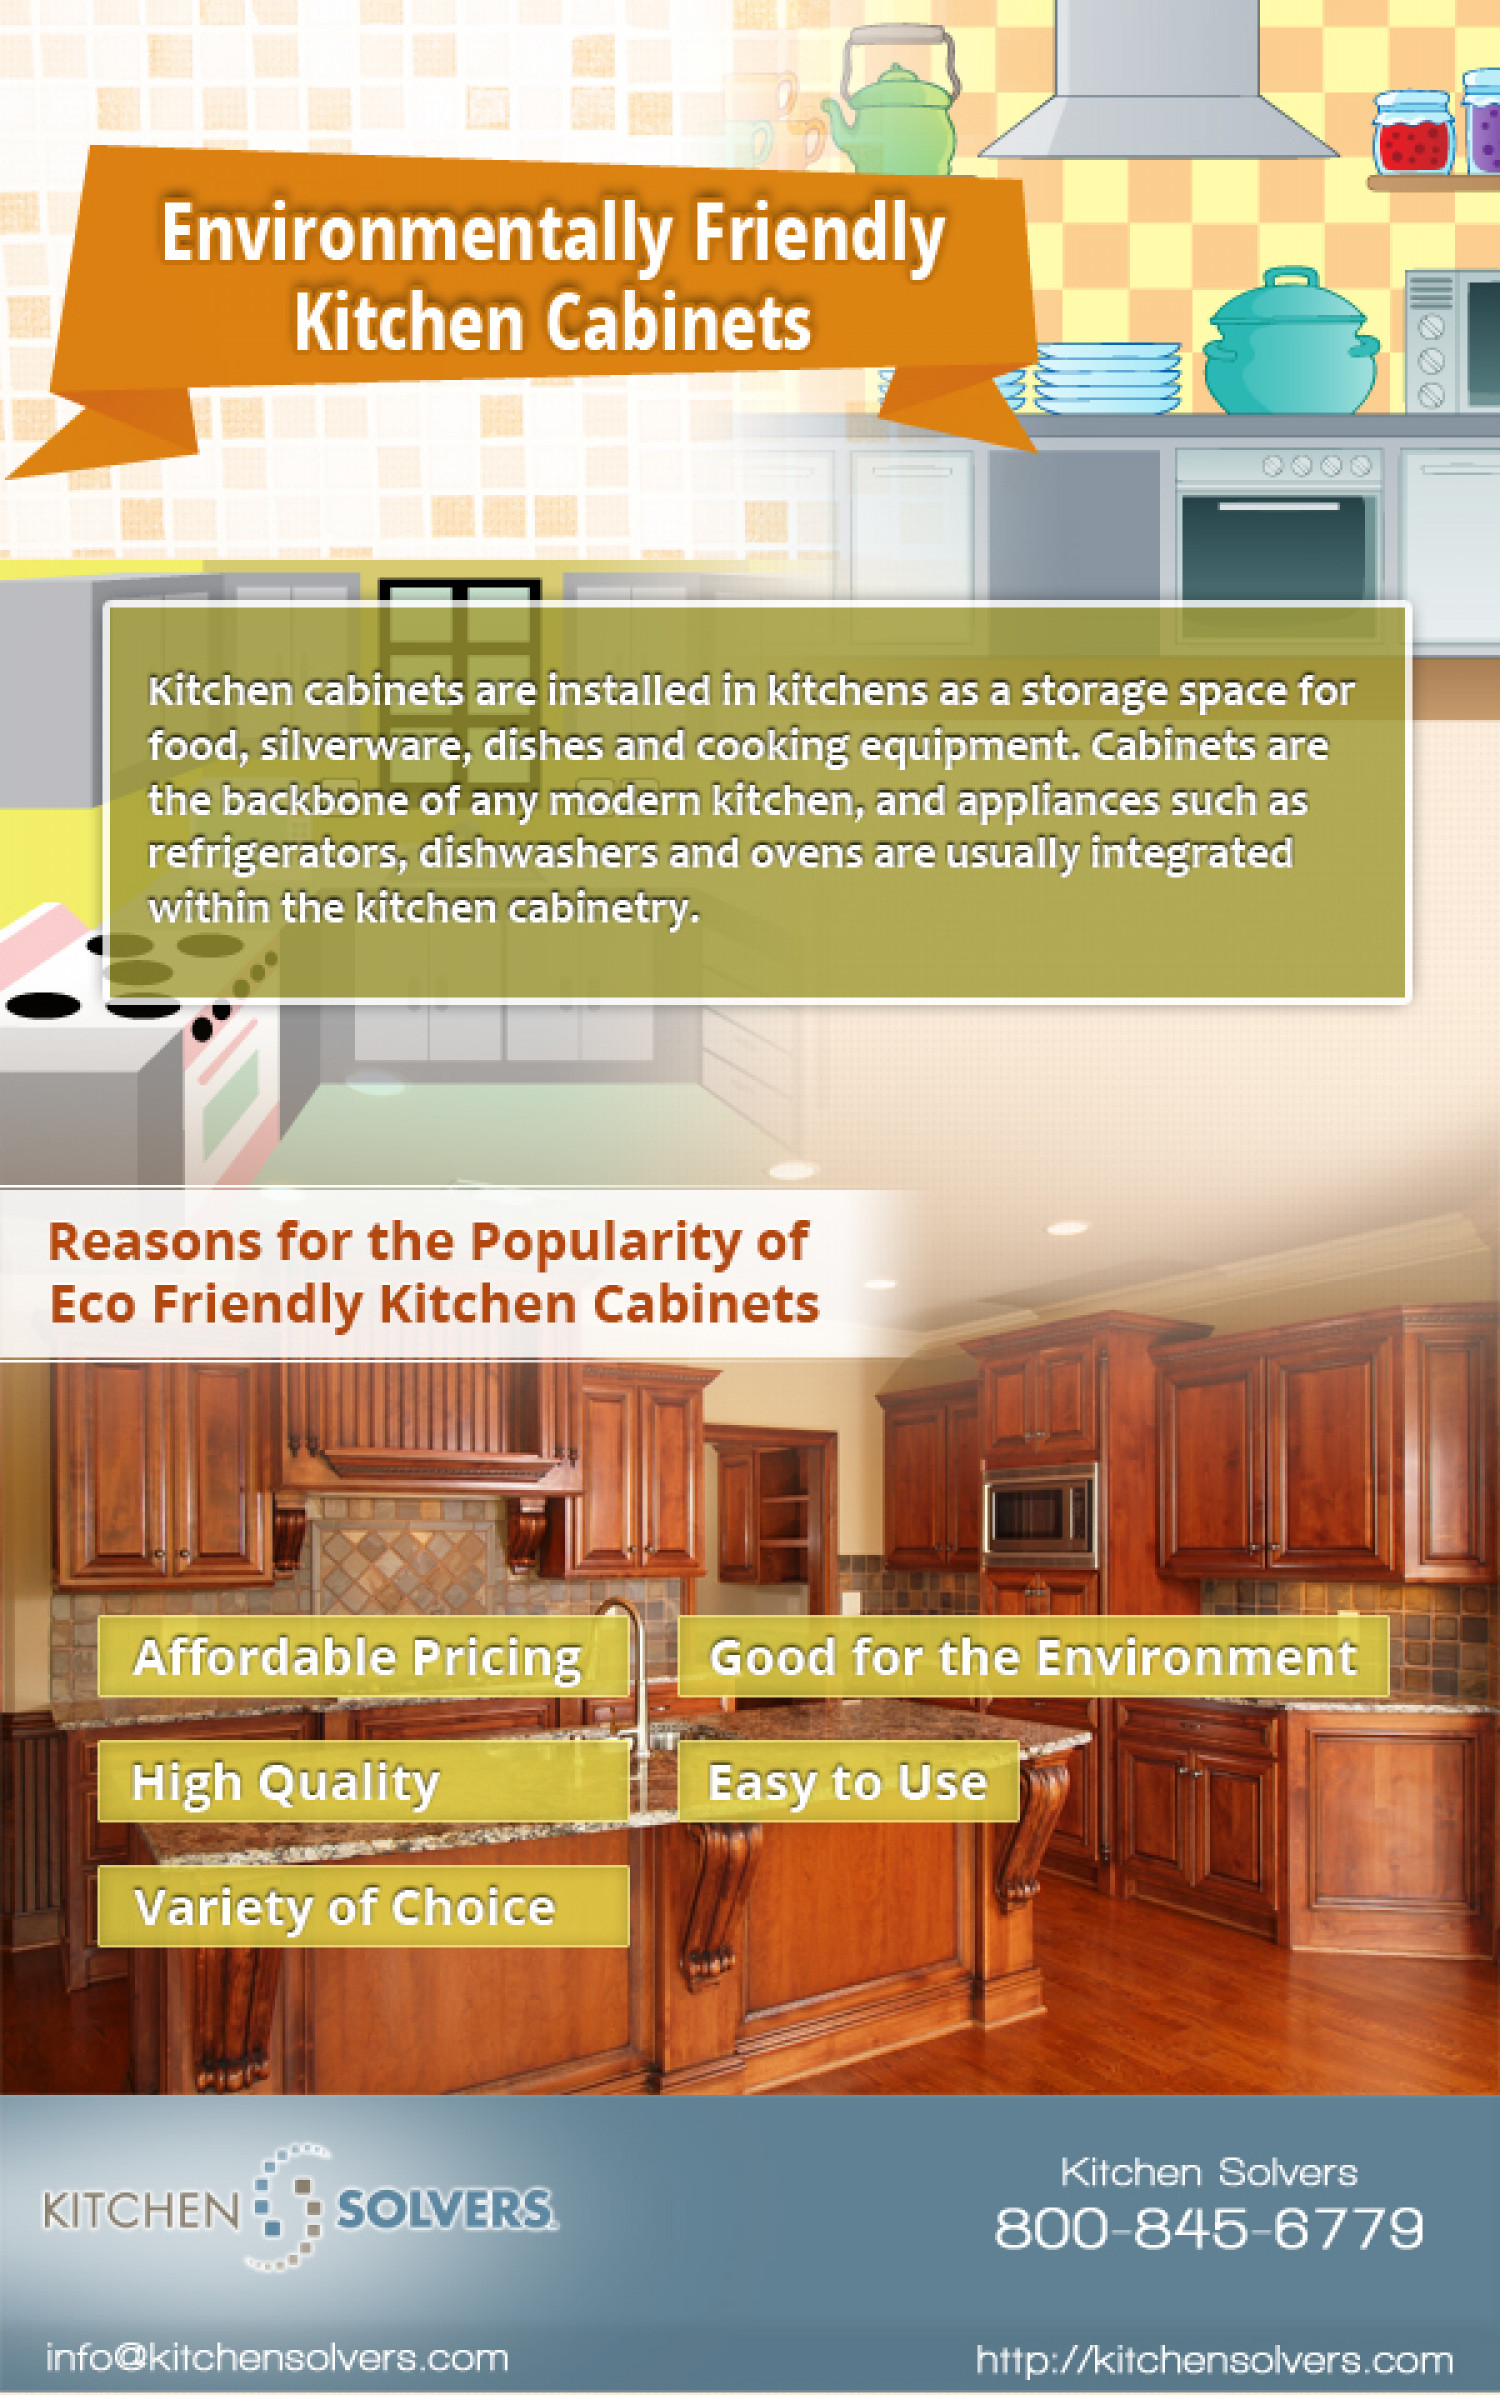 Enviornmentally friendly kitchen eco friendly kitchen for Eco friendly kitchen products